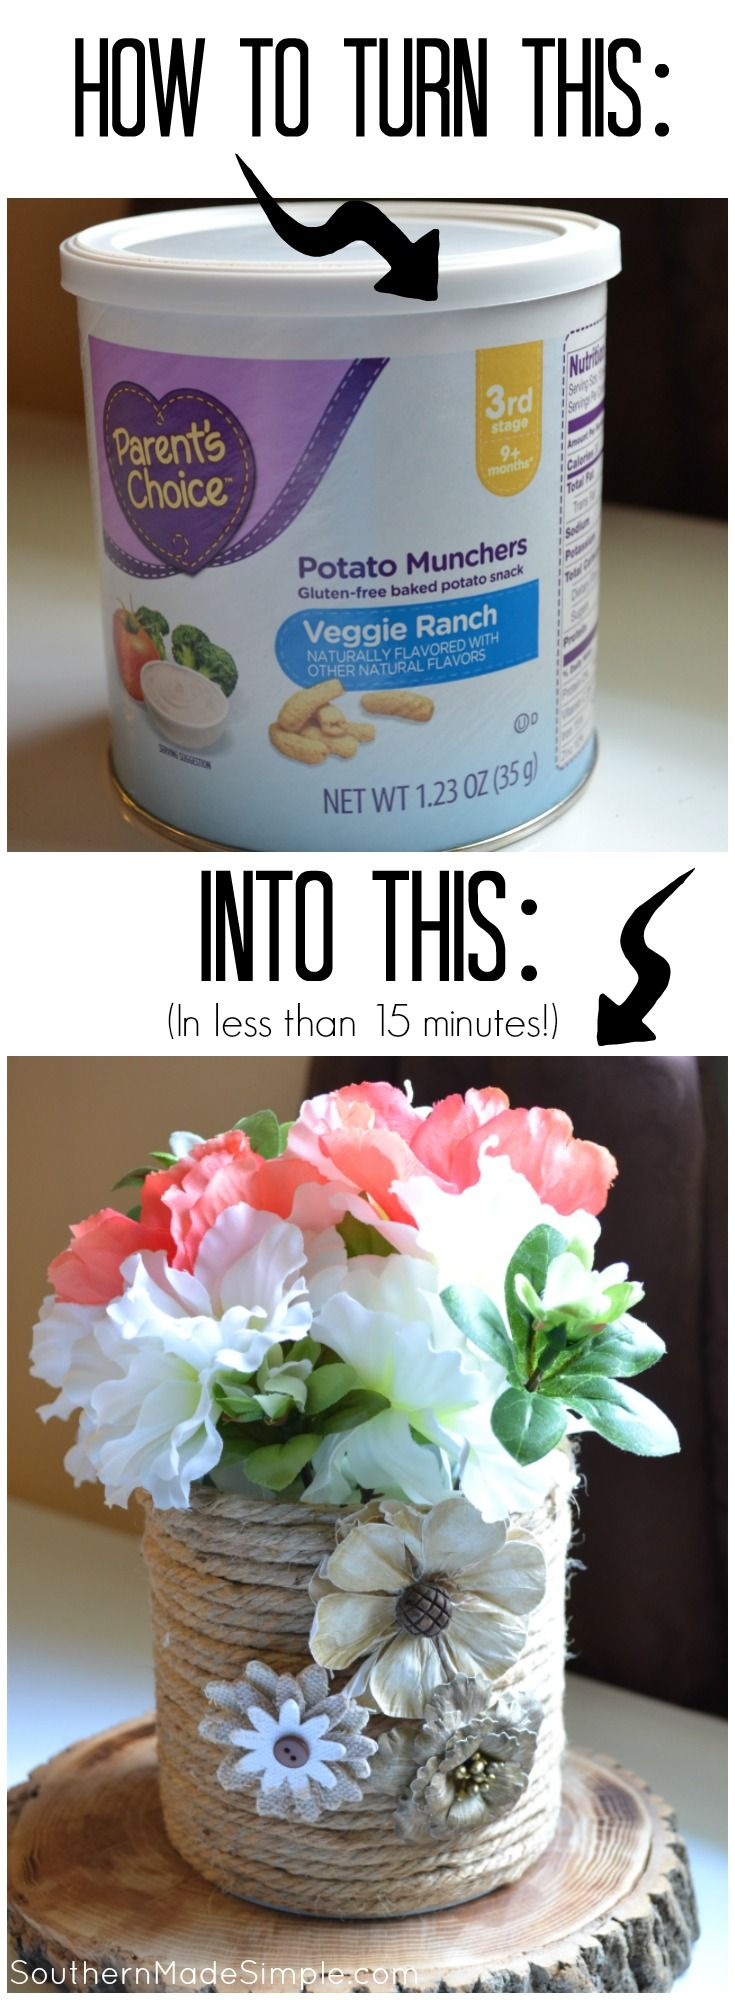 Turn old formula cans into something really great - and in less than 15 minutes! A great way to recycle and repurpose every day items in our life!